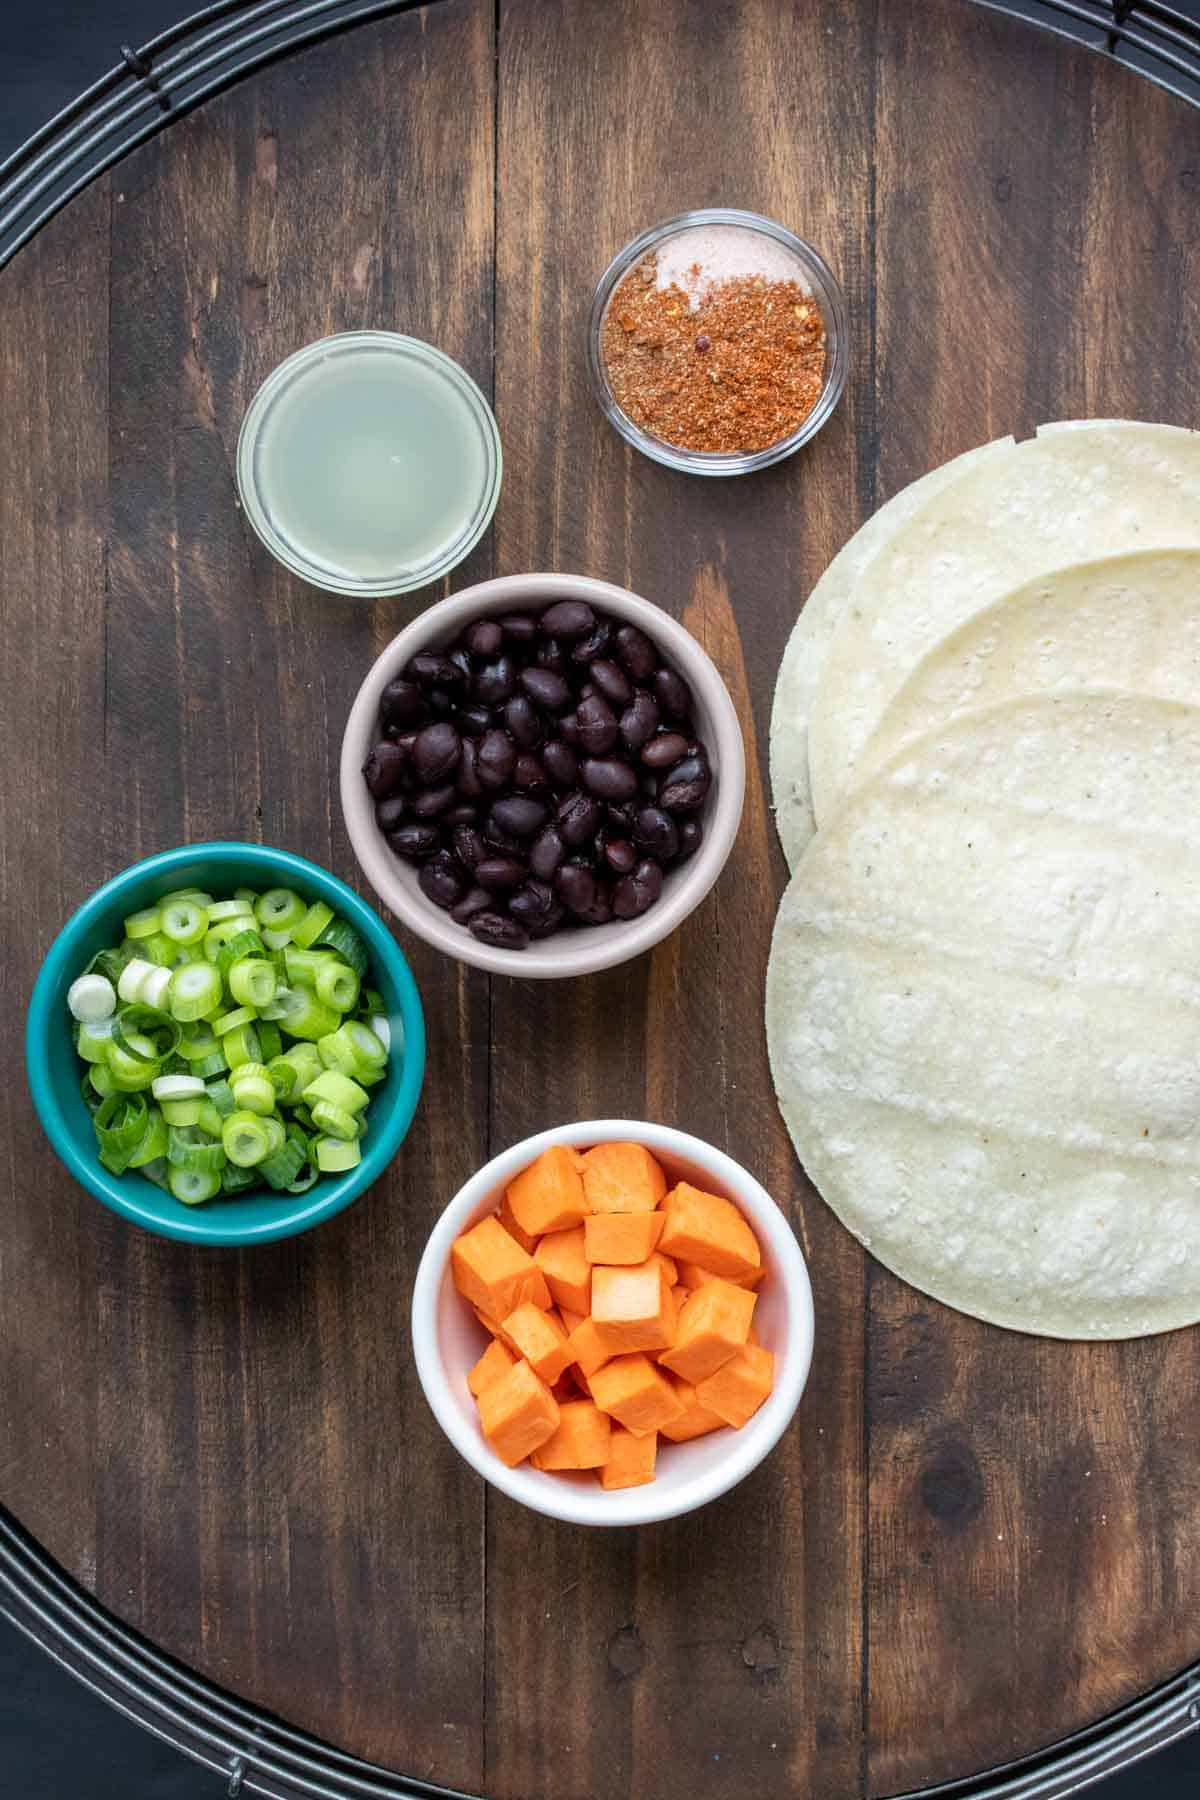 Bowls with chopped sweet potatoes, black beans, green onions, lime juice and spices next to a pile of corn tortillas